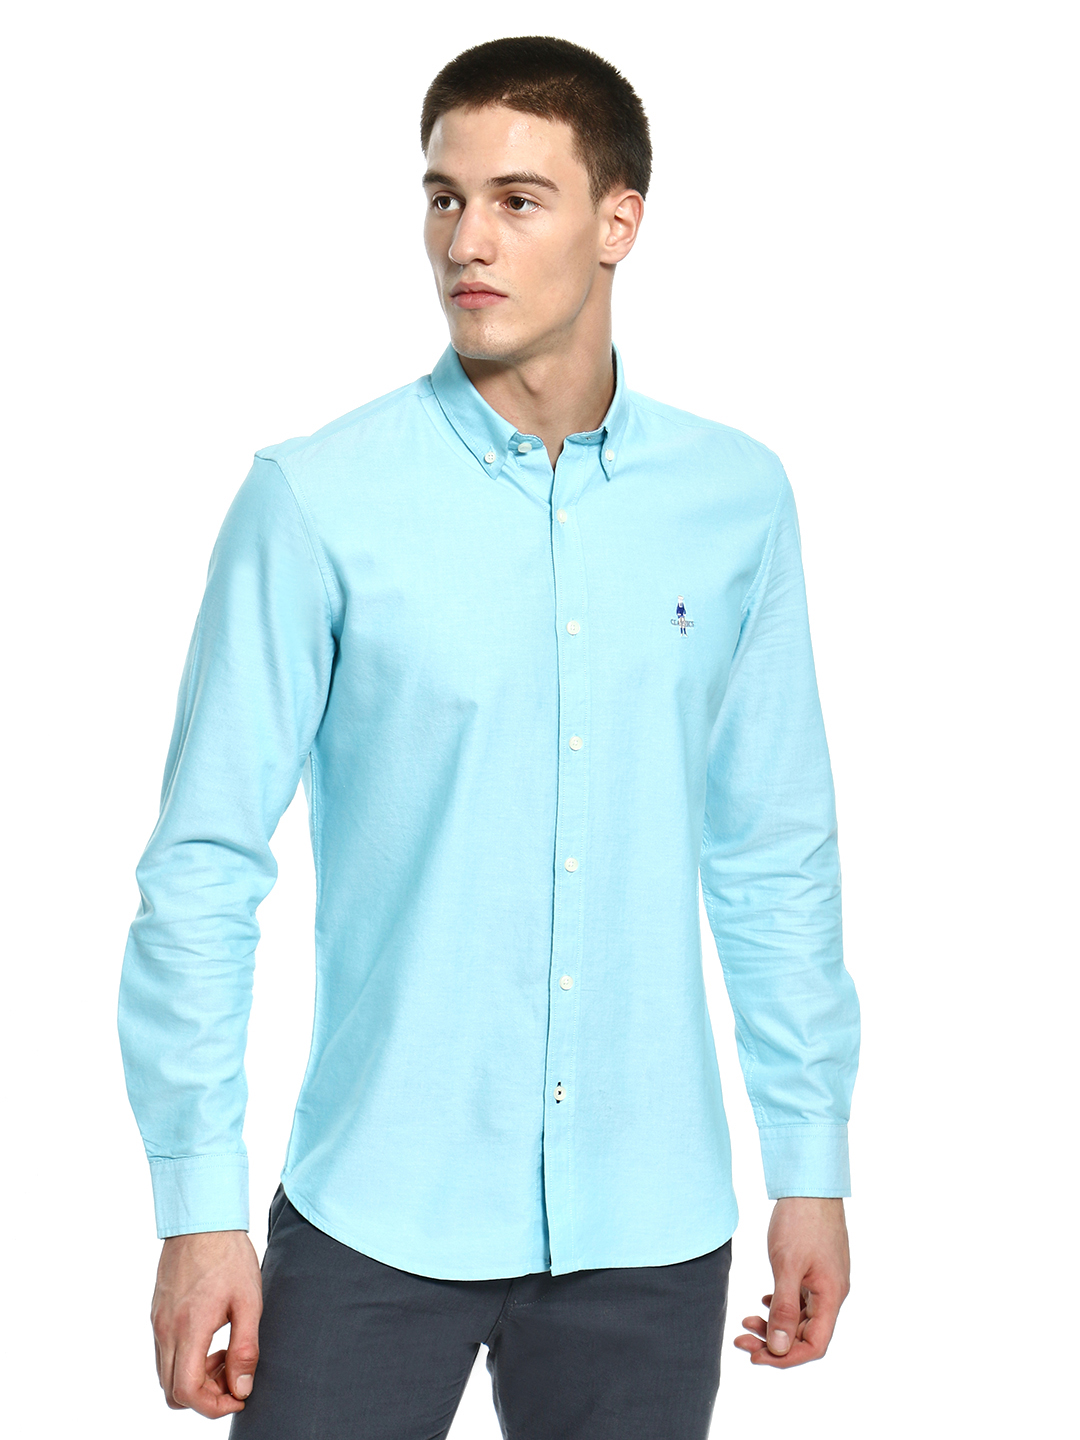 Giordano Blue Basic Oxford Long Sleeve Shirt 1